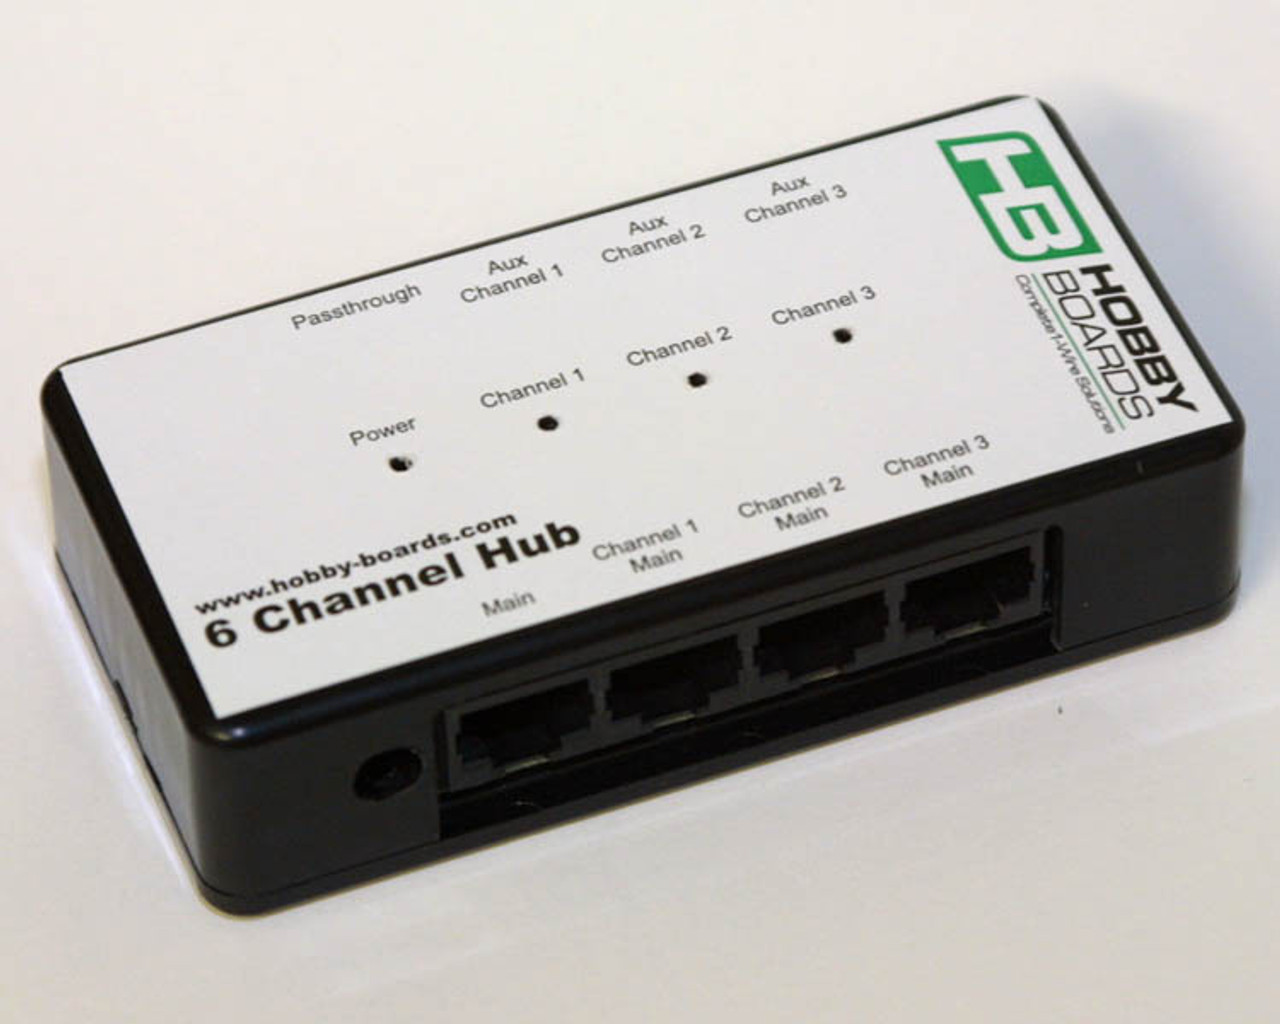 1-Wire 6 Channel Hub